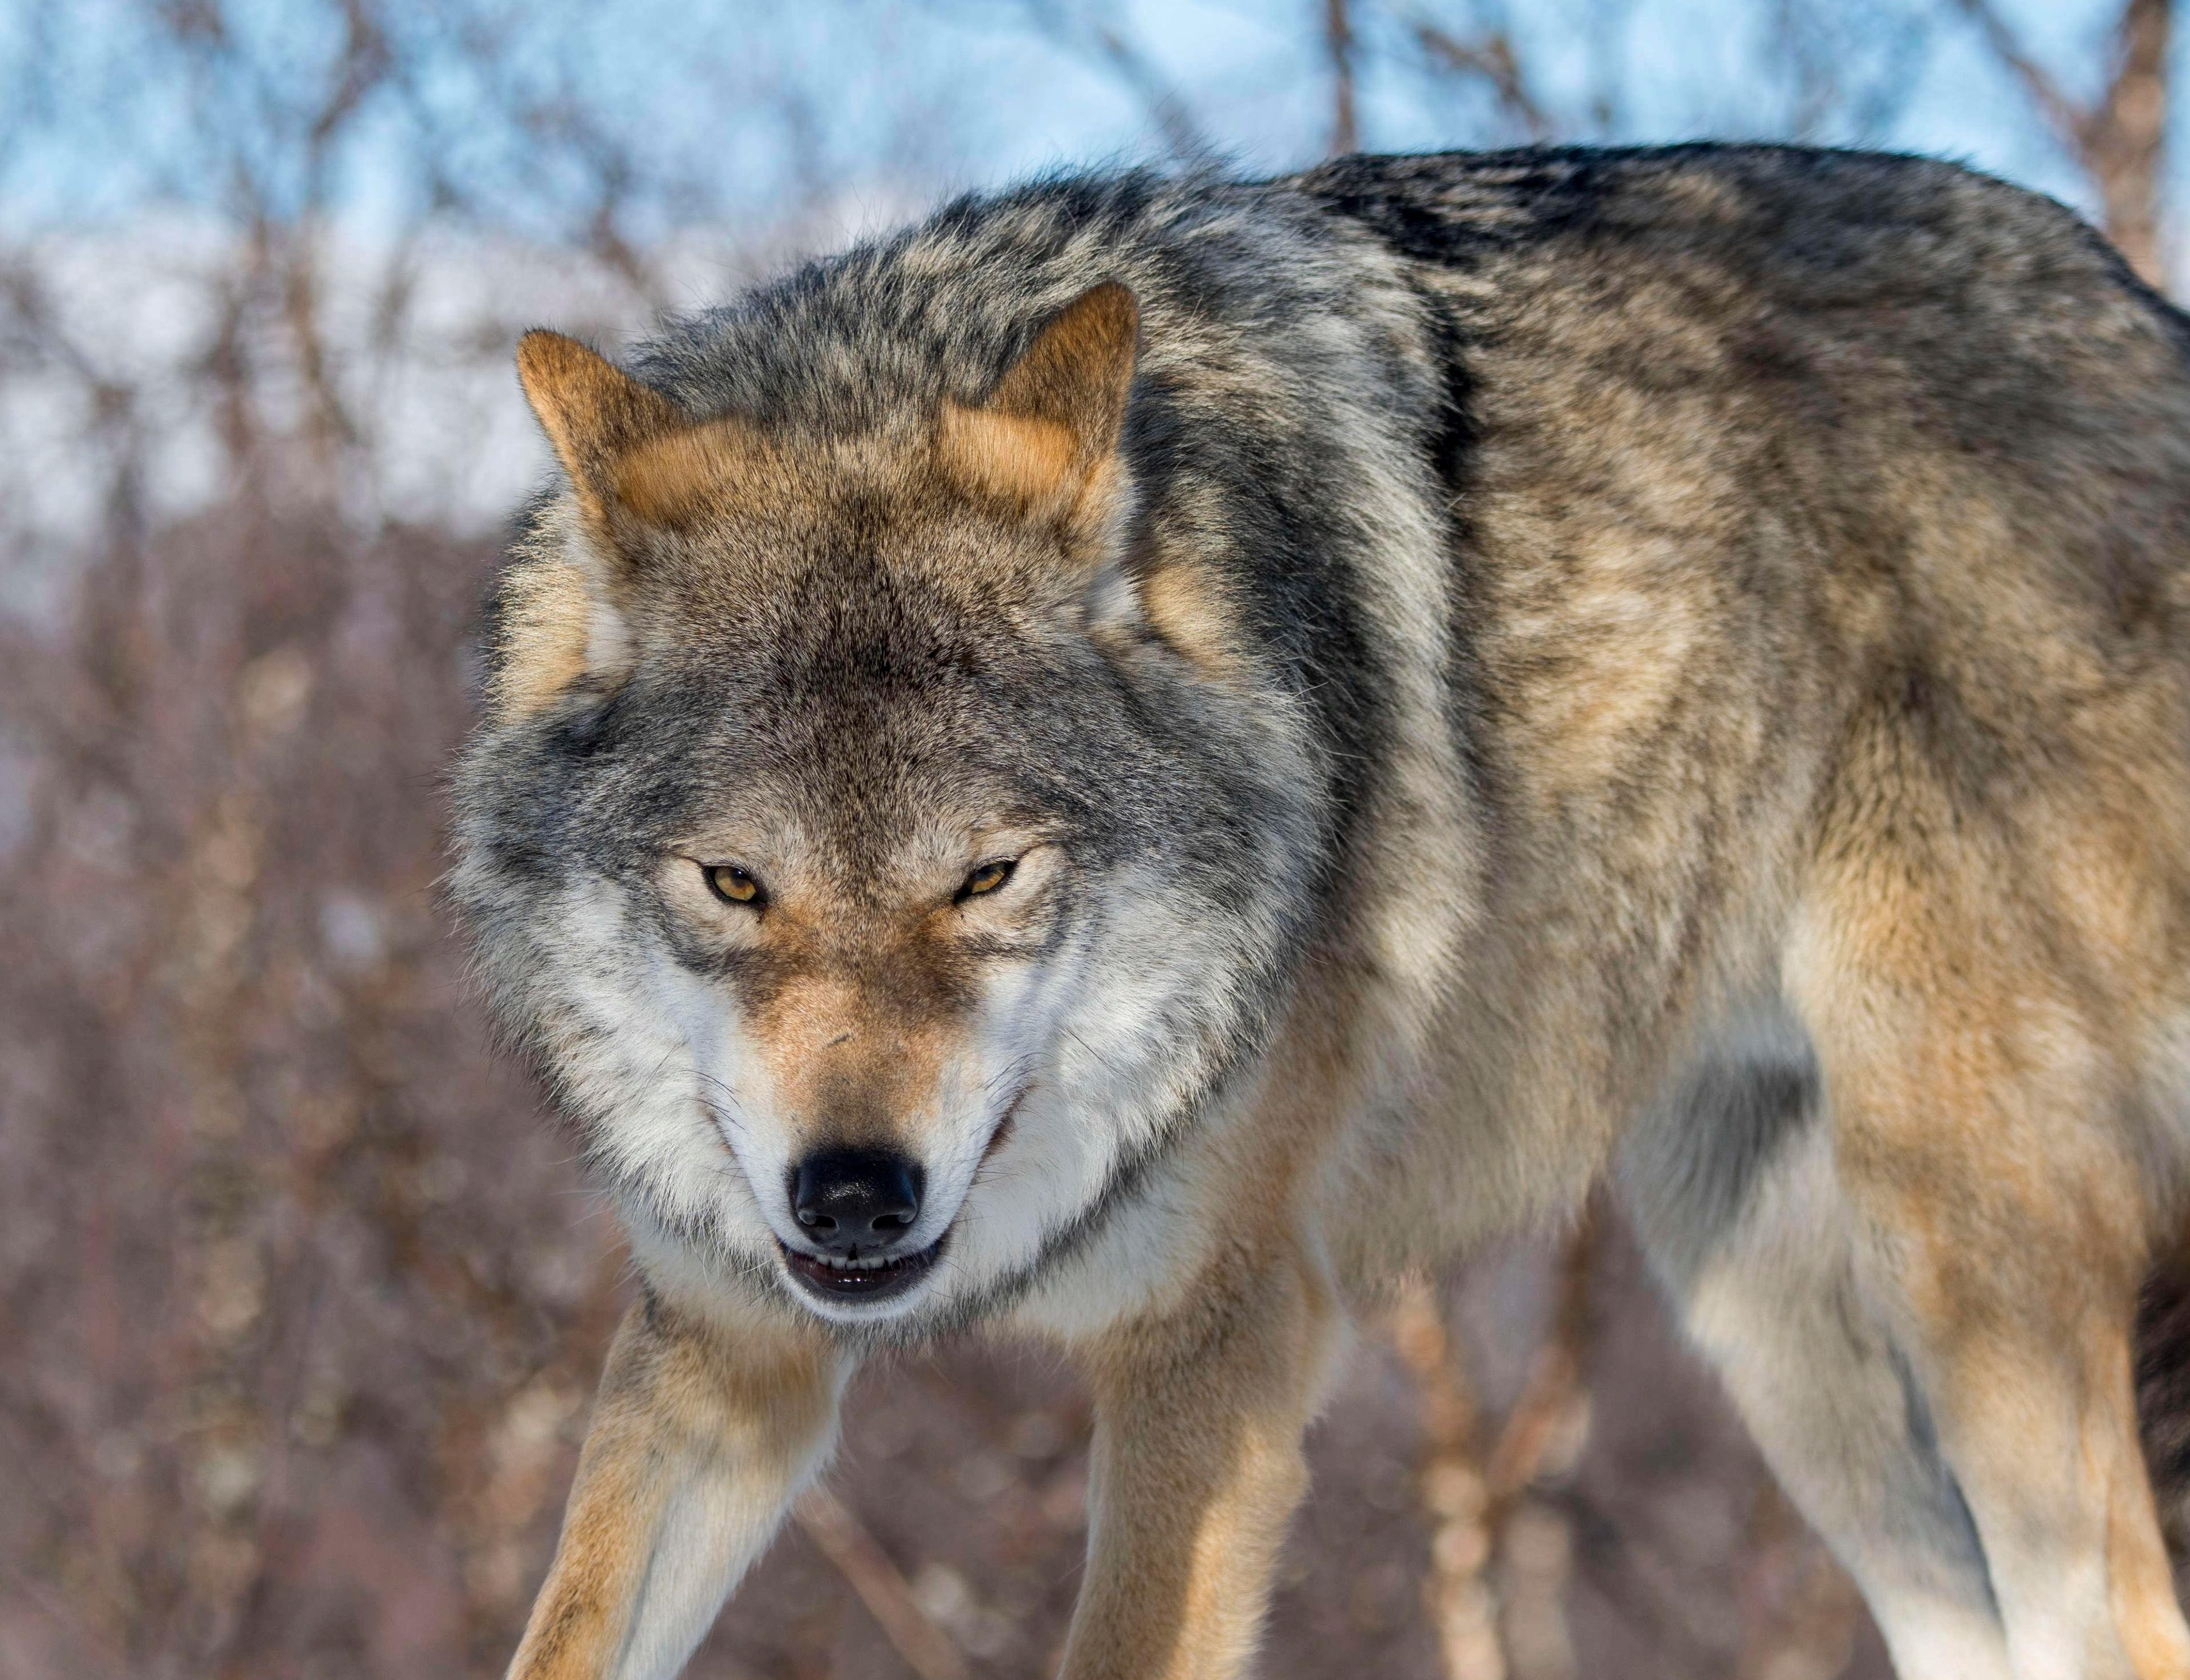 Chernobyl wolves infected with radiation feared to be spreading mutant genes across Europe